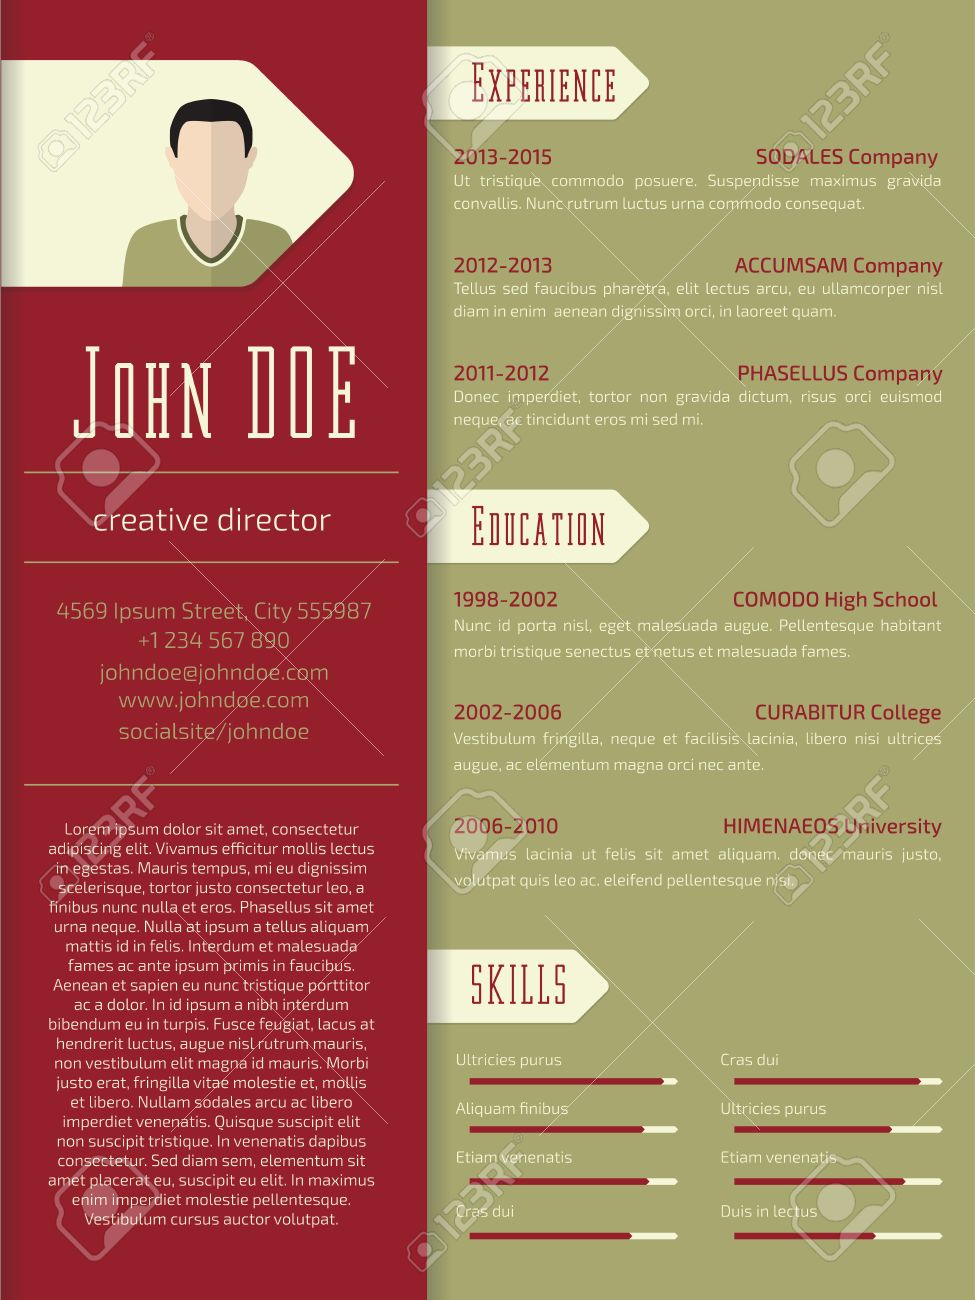 modern curriculum vitae cv resume template design royalty modern curriculum vitae cv resume template design stock vector 40964250